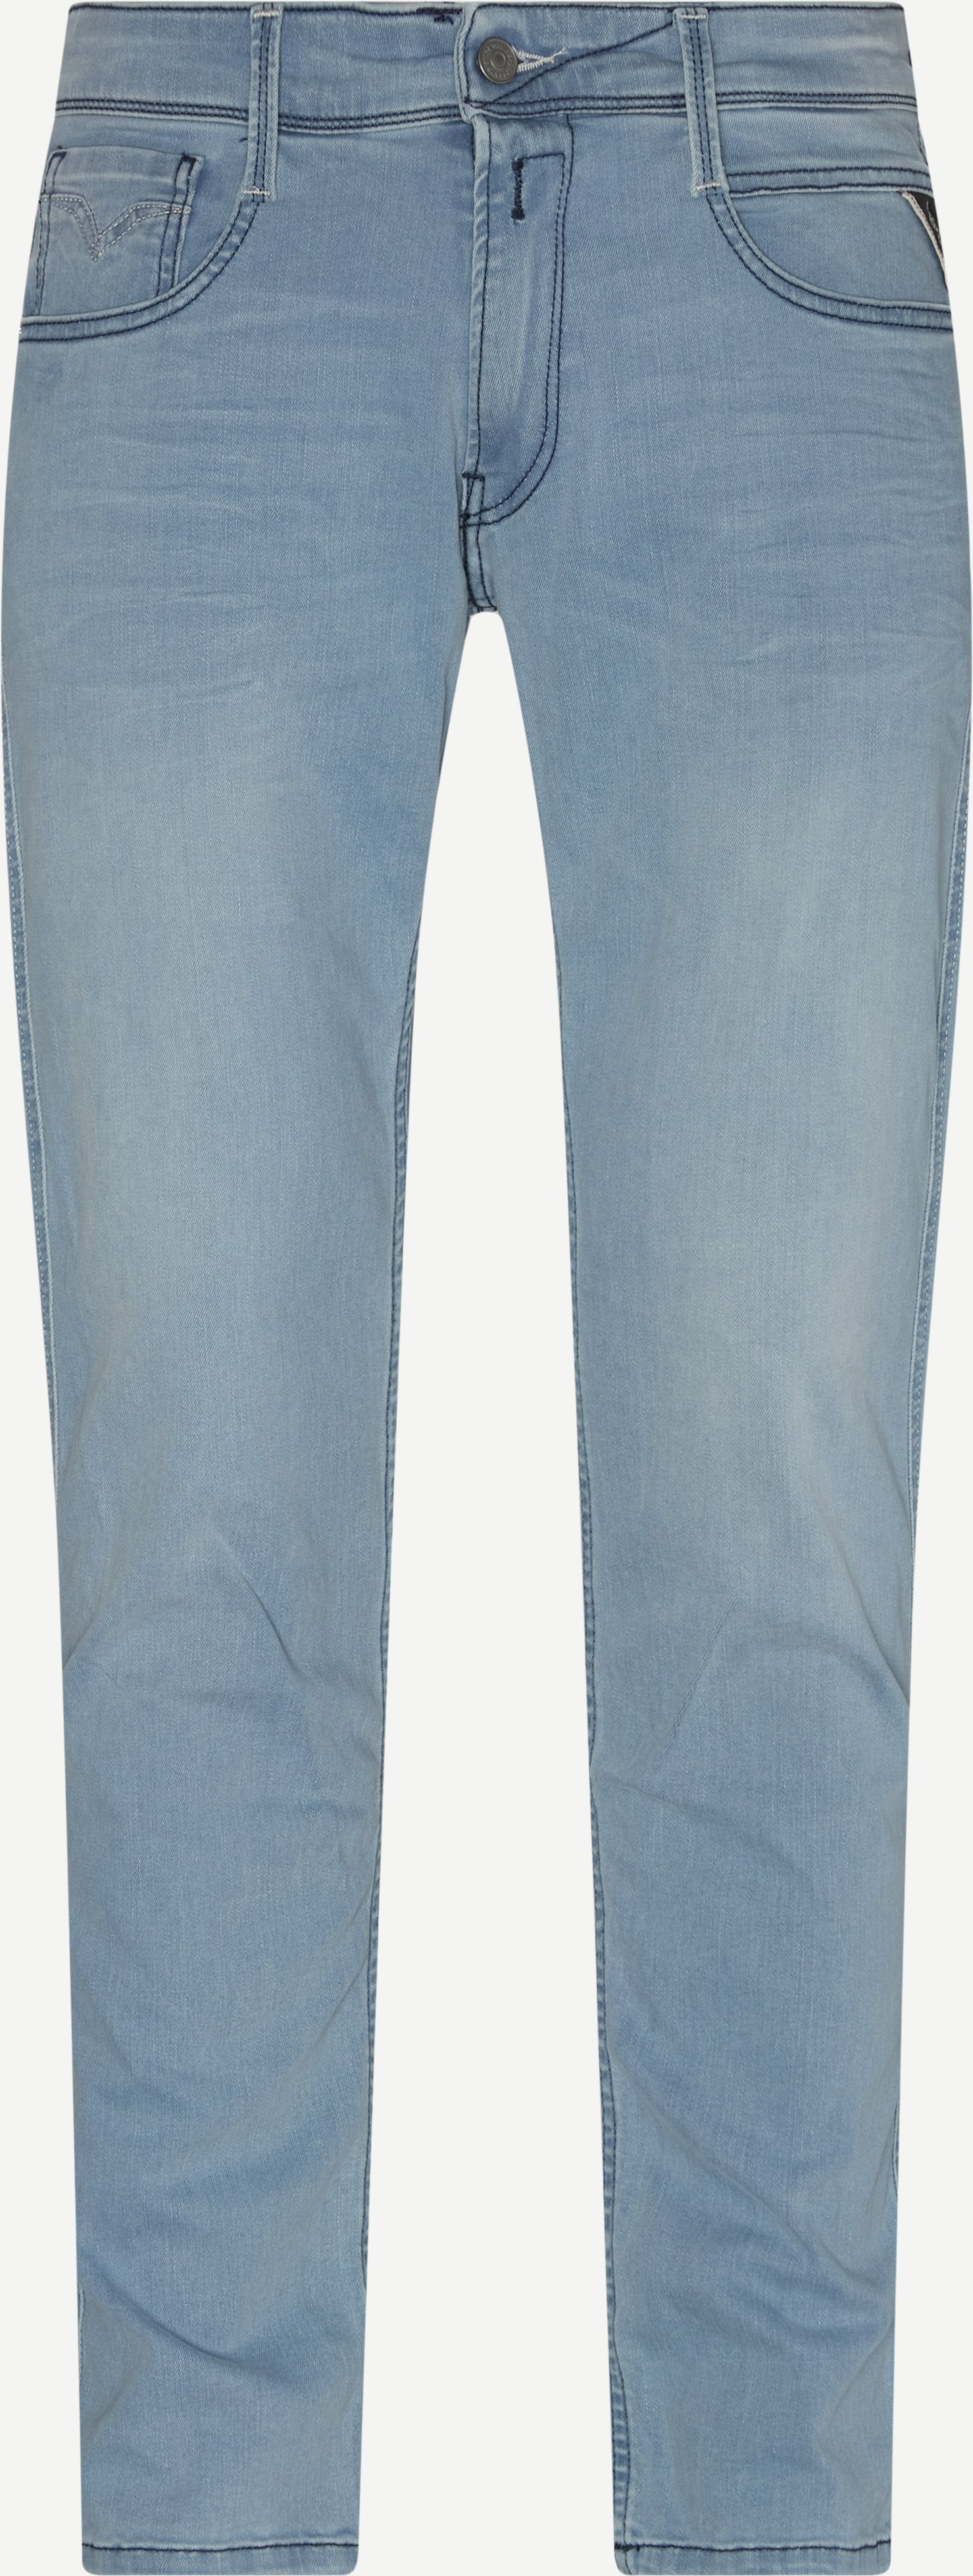 M914 Jeans - Jeans - Regular - Denim